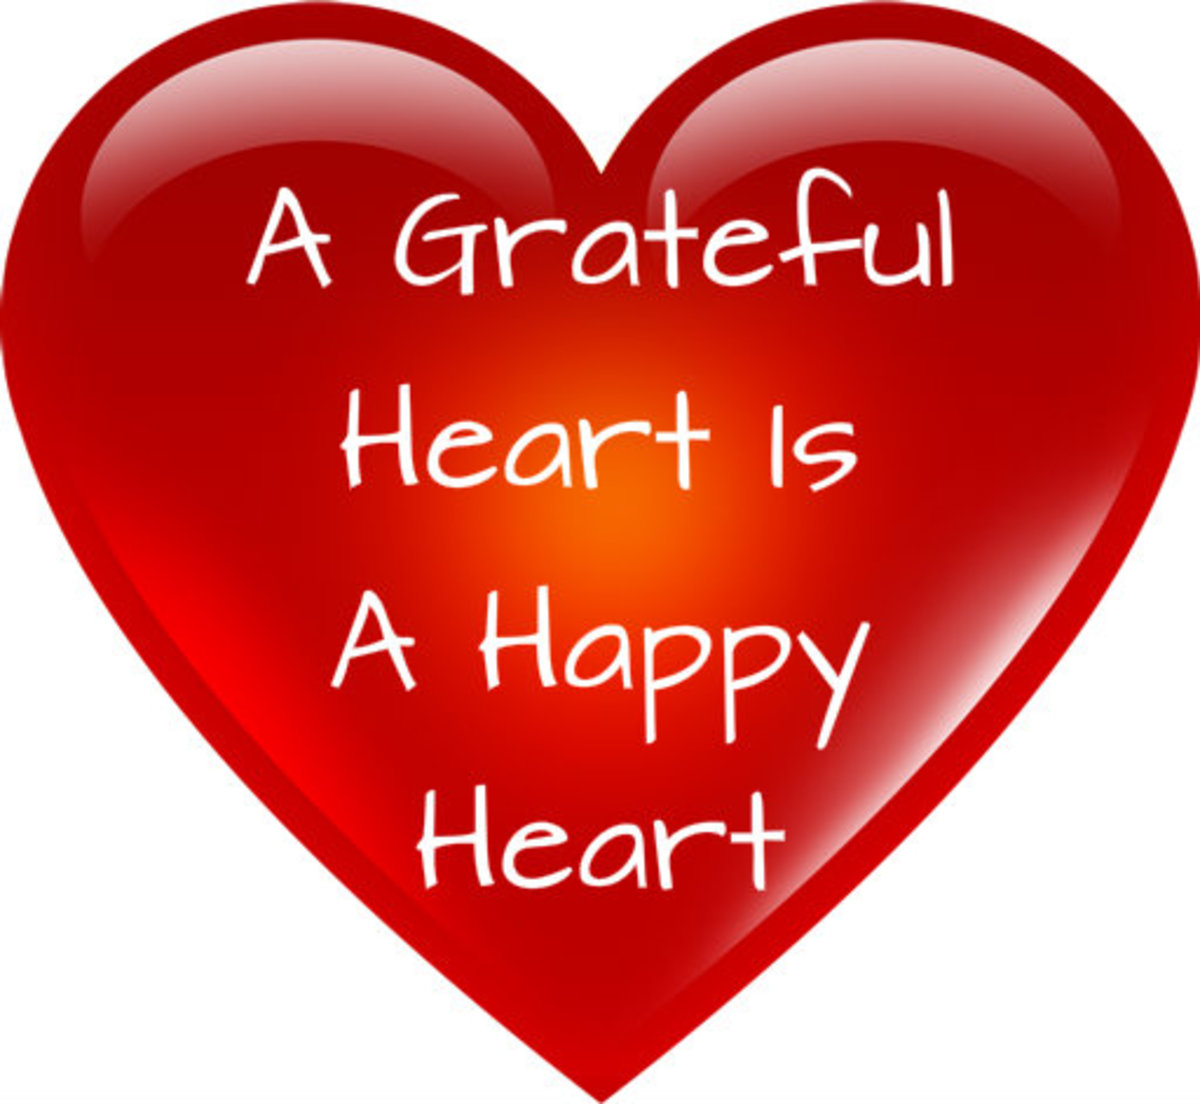 Heal Disease And Sickness With Thankfulness And Gratitude